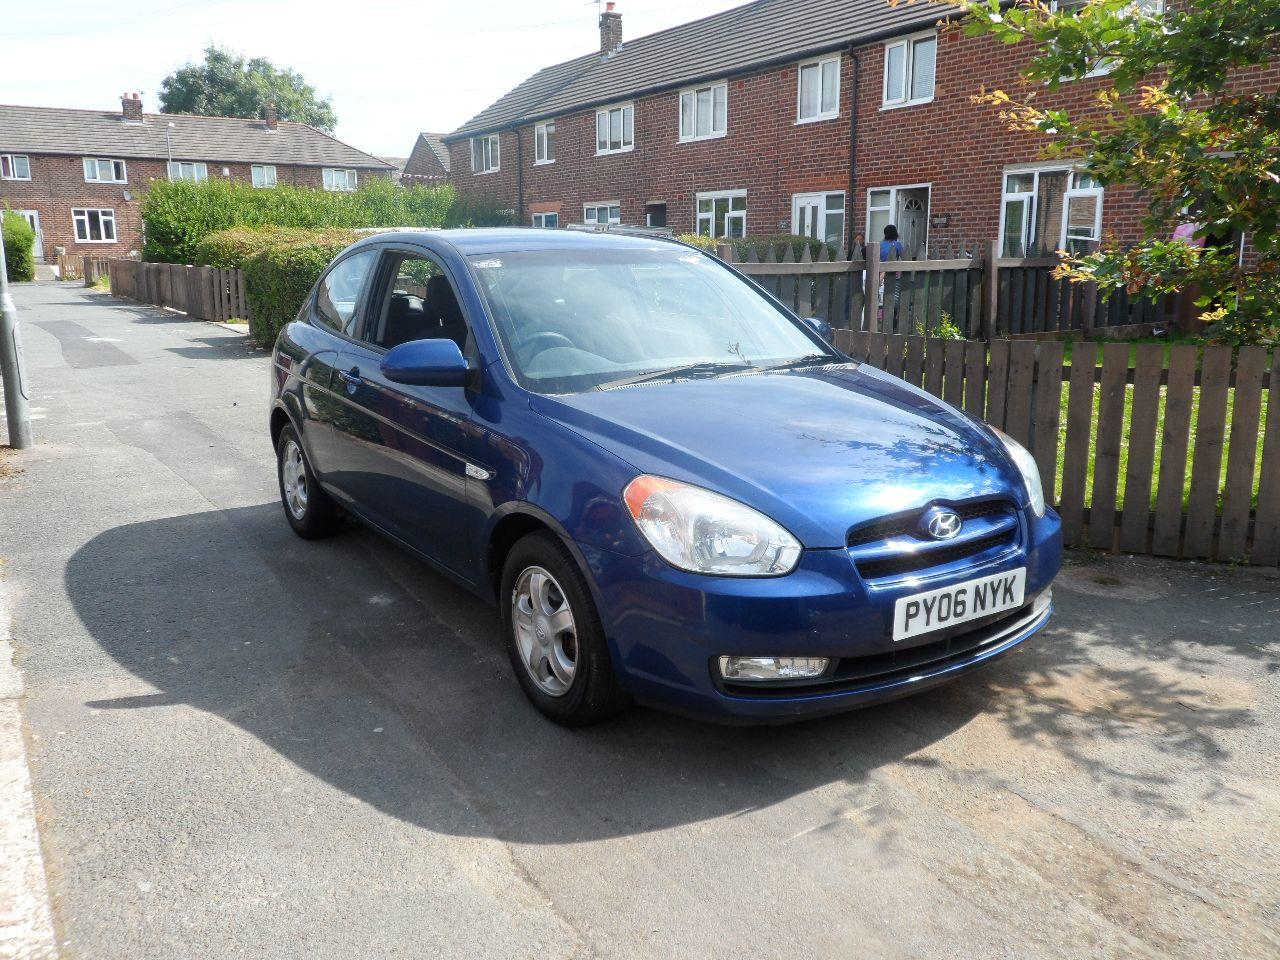 Hyundai Accent 1.4 ATLANTIC LIMITED EDITION HATCHBACK PETROL BLUE